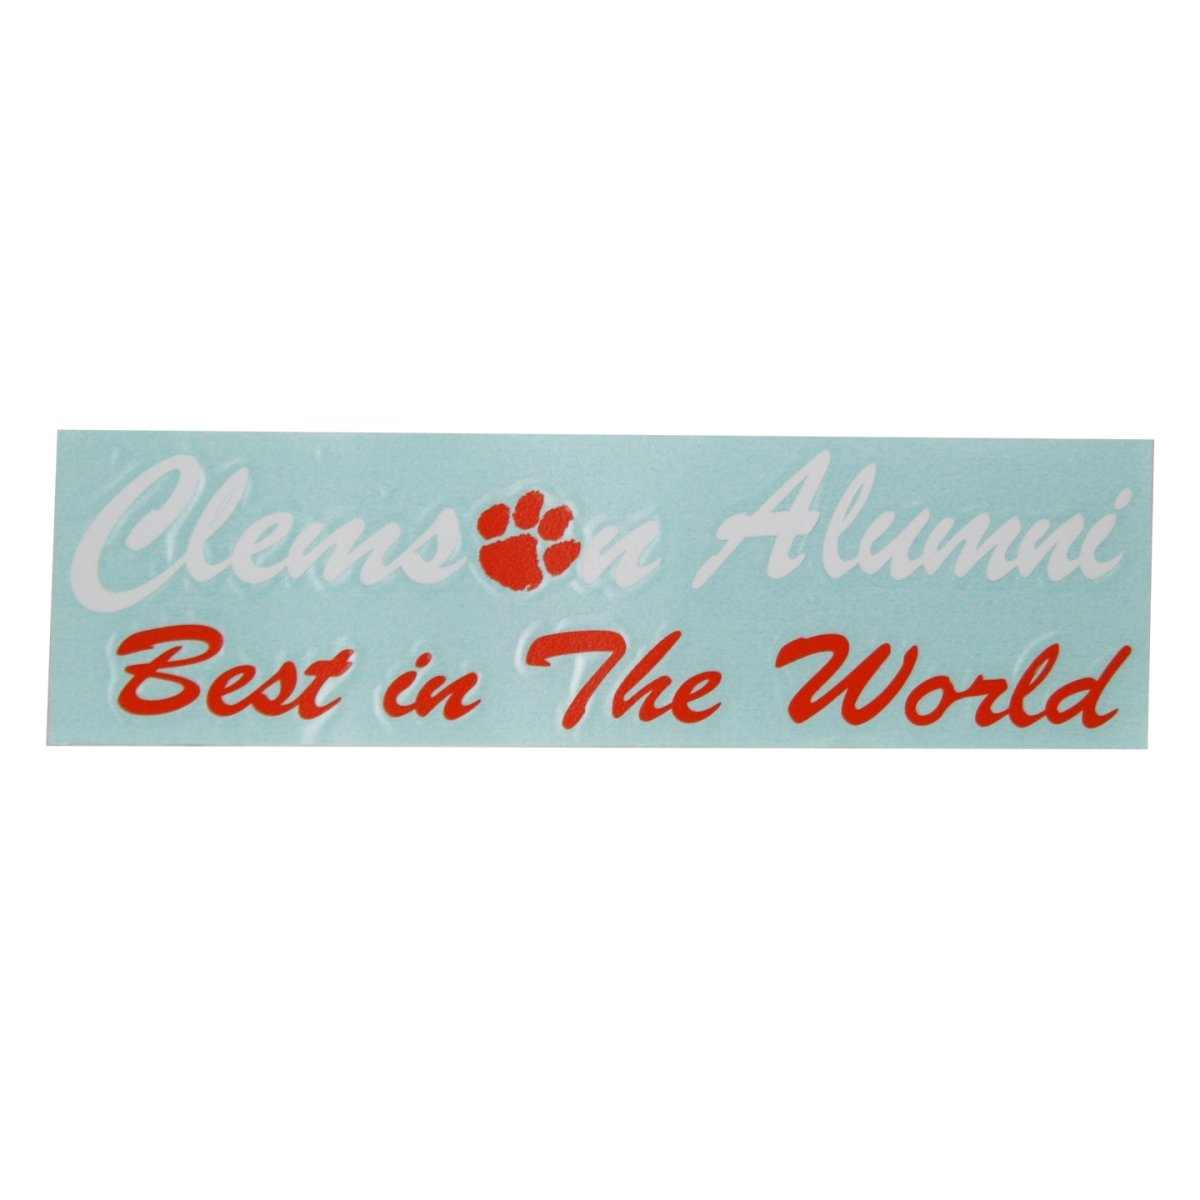 "Stockdale Clemson ""best Alumni in the World"" Decal - Mr. Knickerbocker"